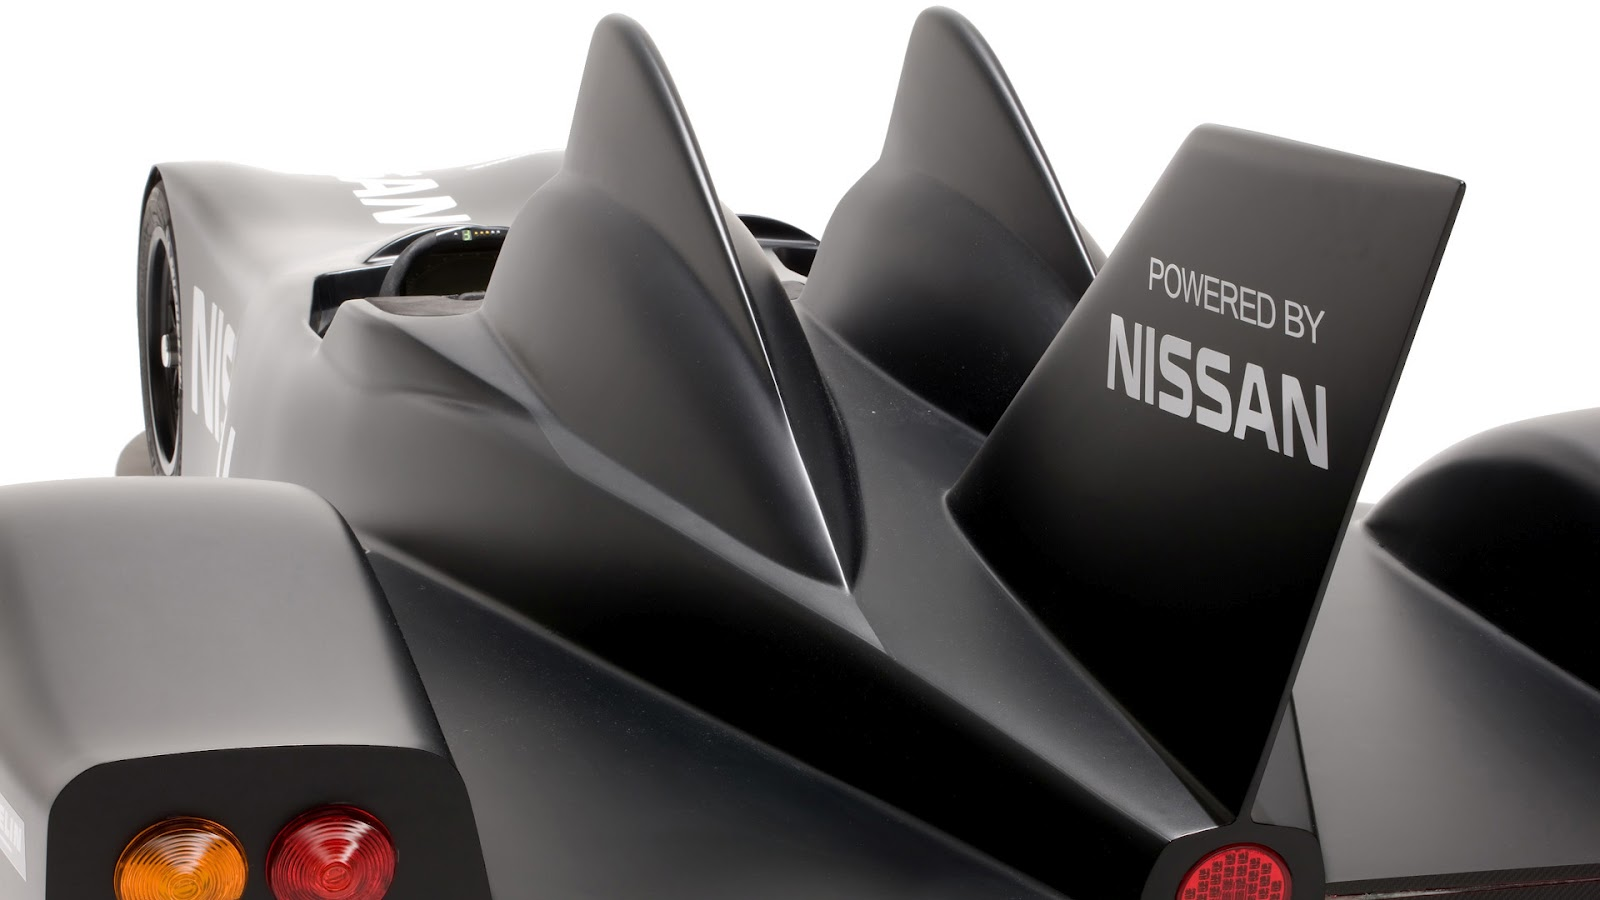 2012 Nissan Delta Wing Exterior (Photo 3 of 12)